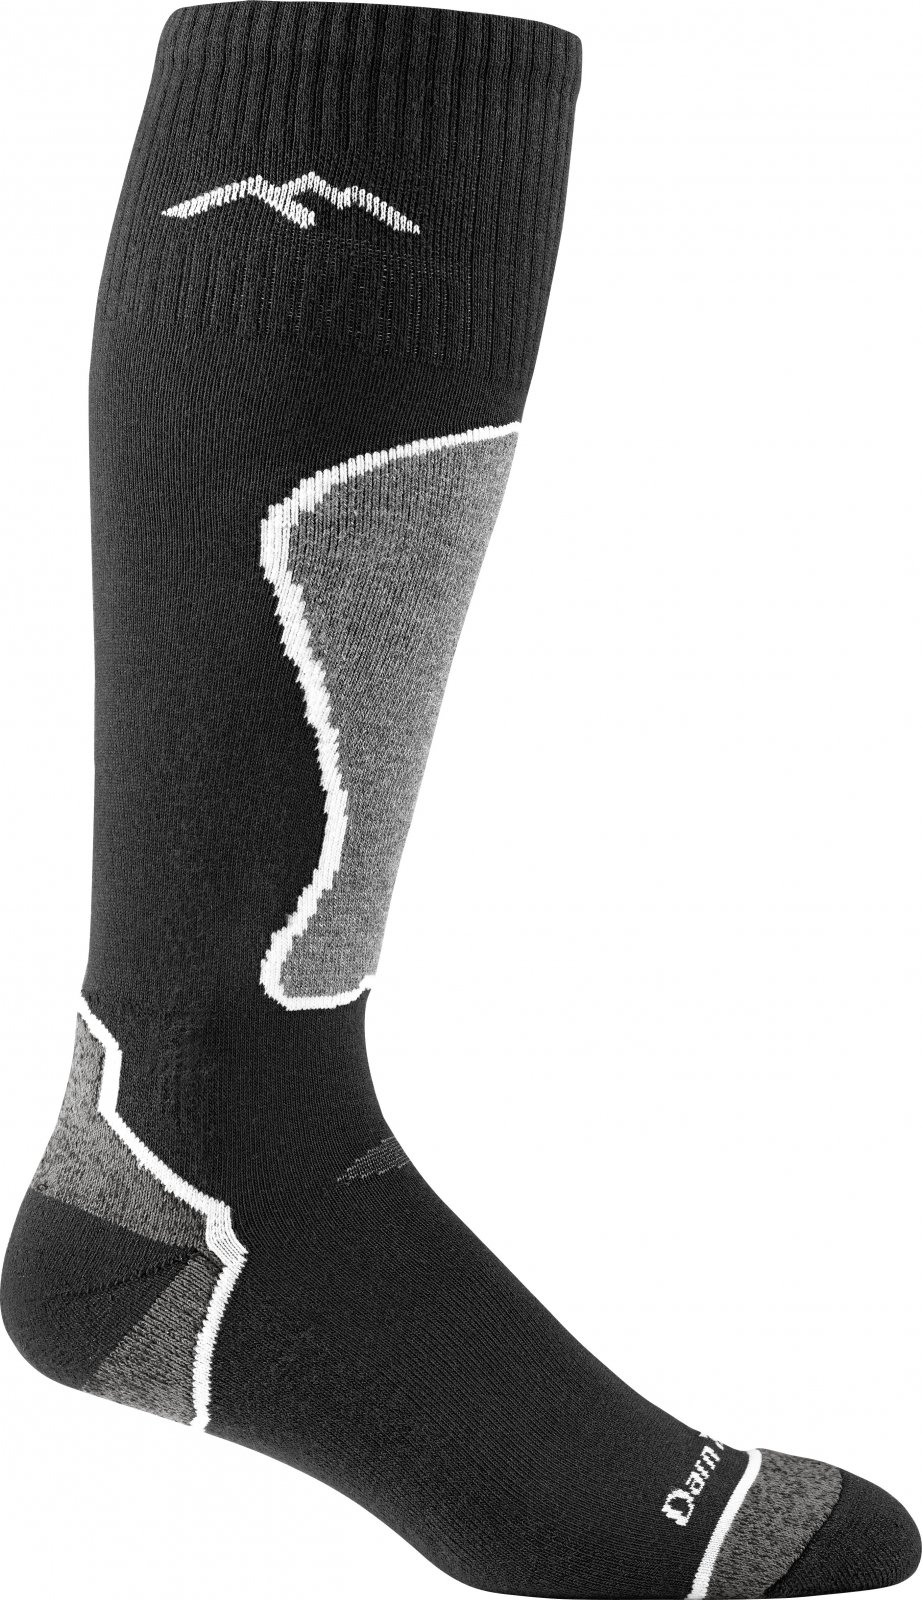 Darn Tough Edge OTC Midweight Padded Shin Snowboard Socks